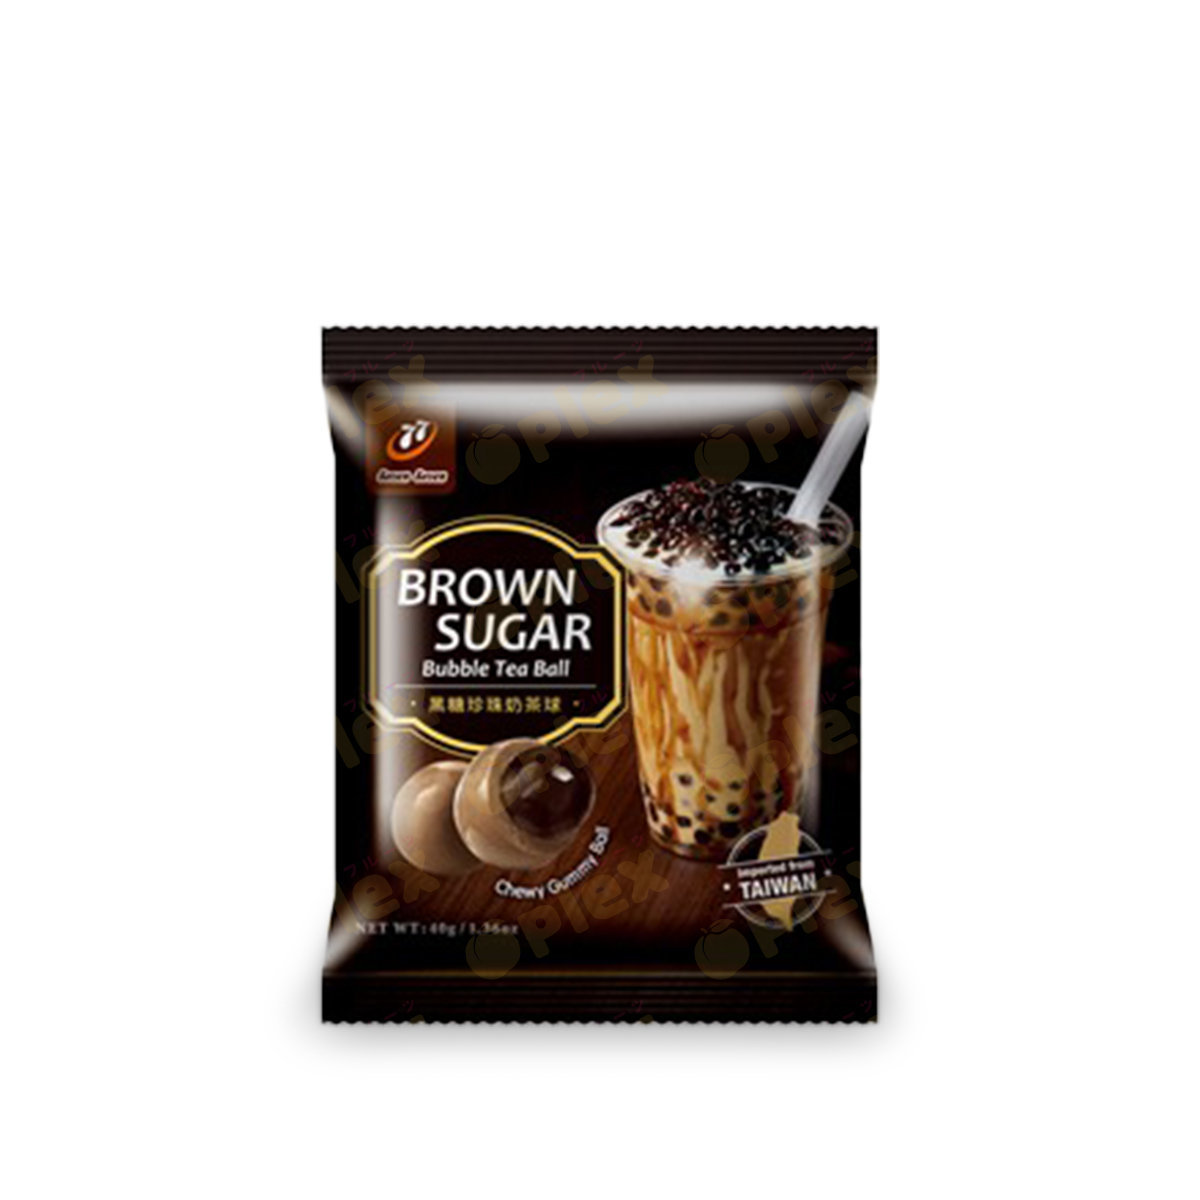 Taiwan Brown Sugar Bubble Tea Ball (40g)